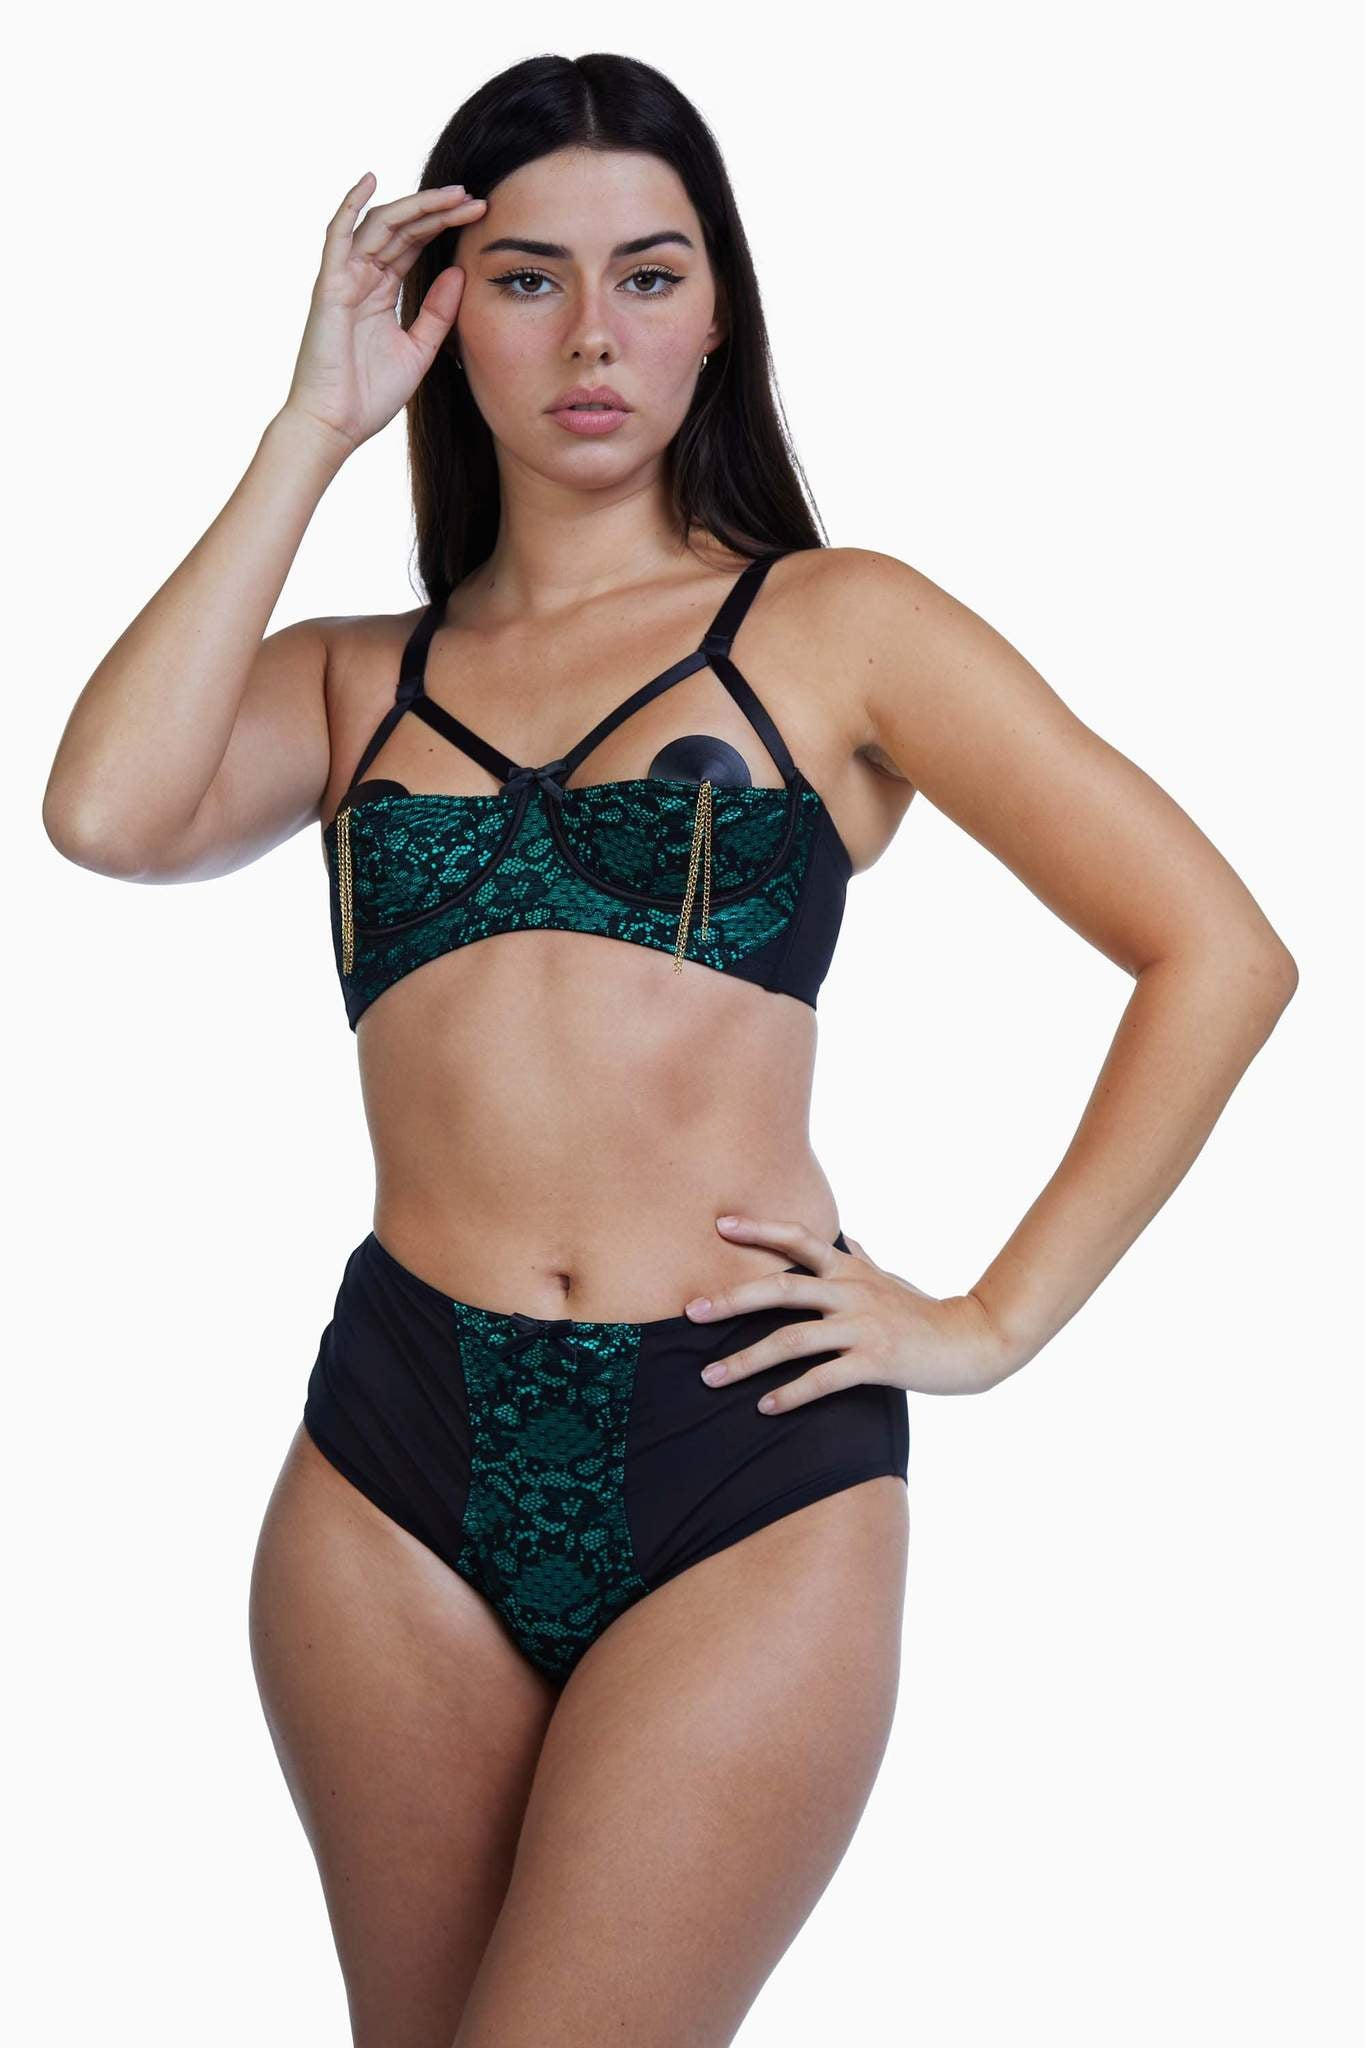 Elsie Emerald Green and Black Lace 1/4 Cup Bra - 32B, 34B, 34C +36F left